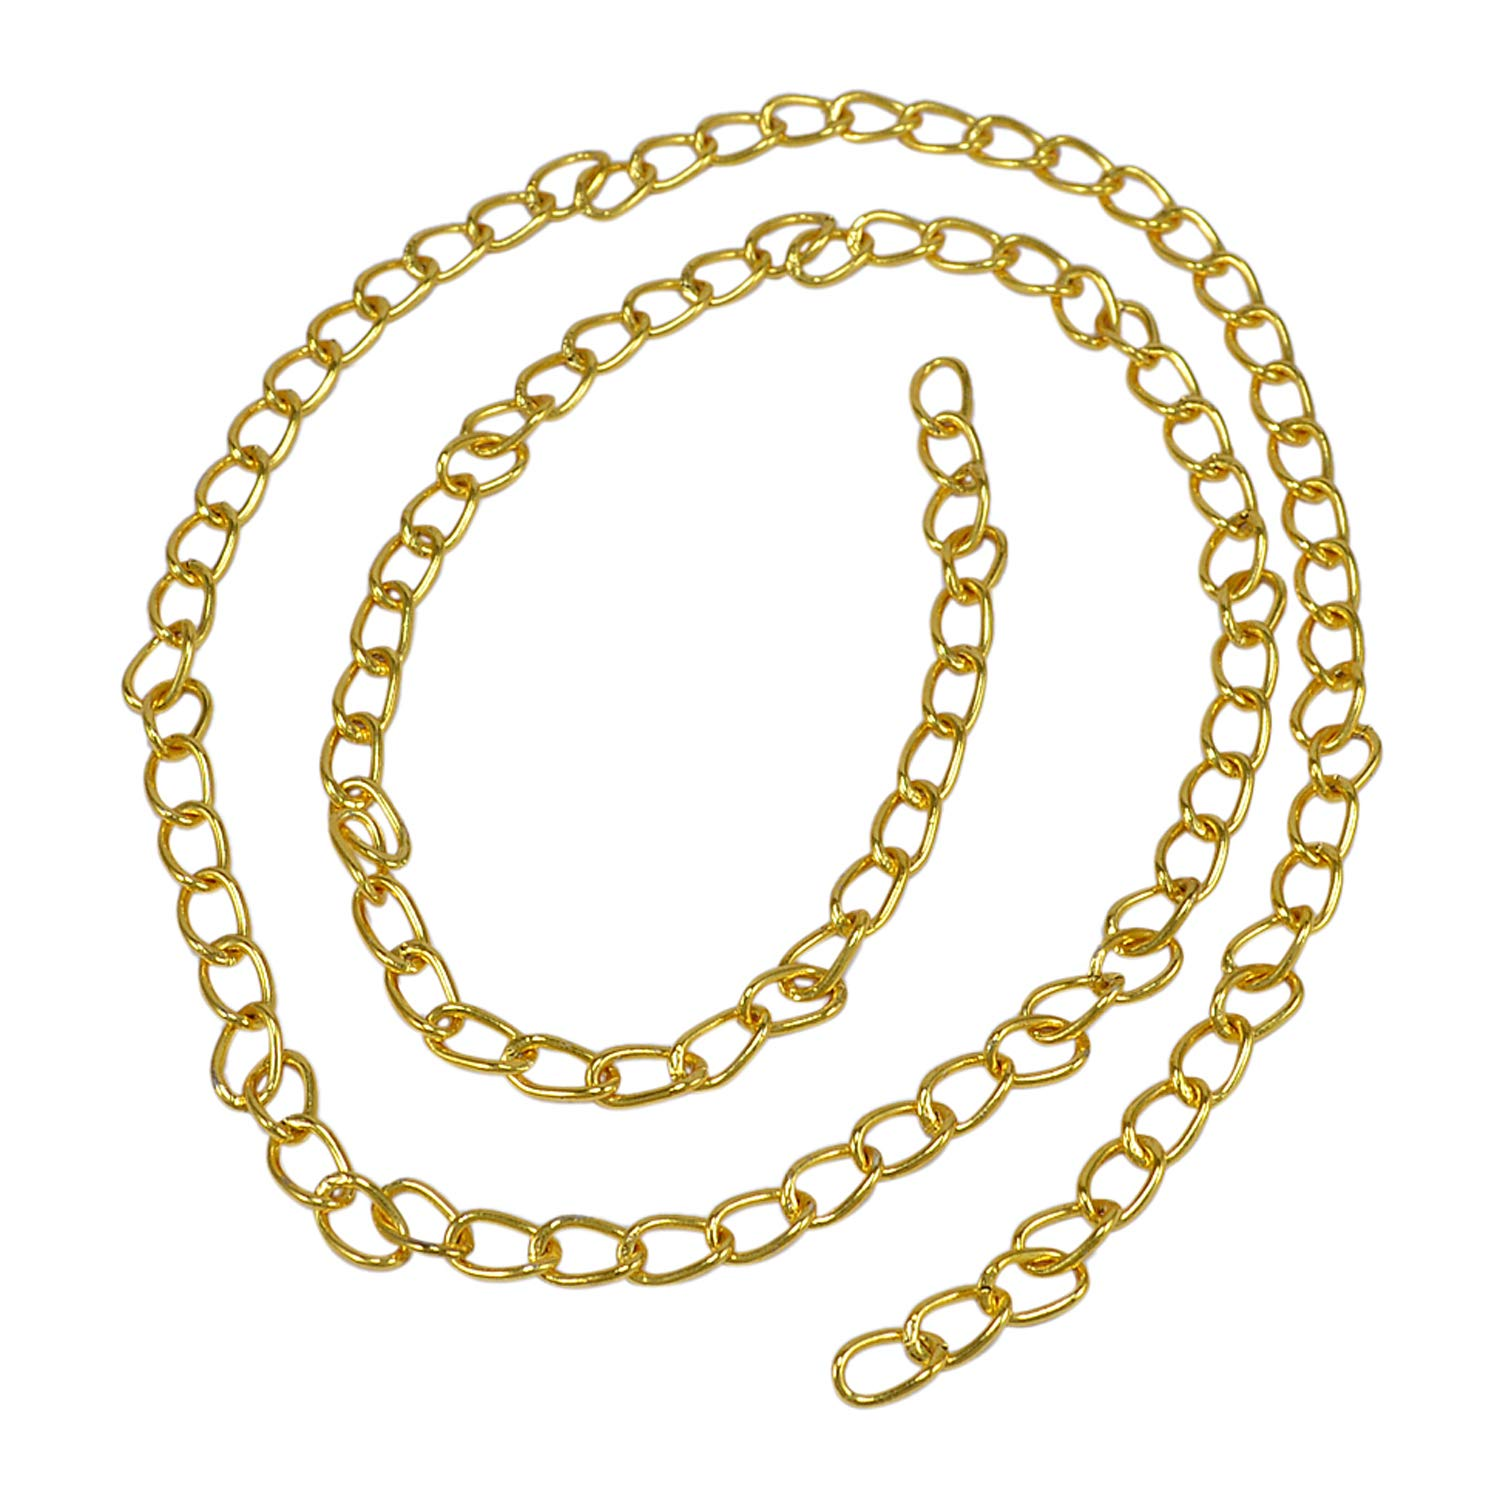 Silvesto India Gold Plated Chain PG-132954